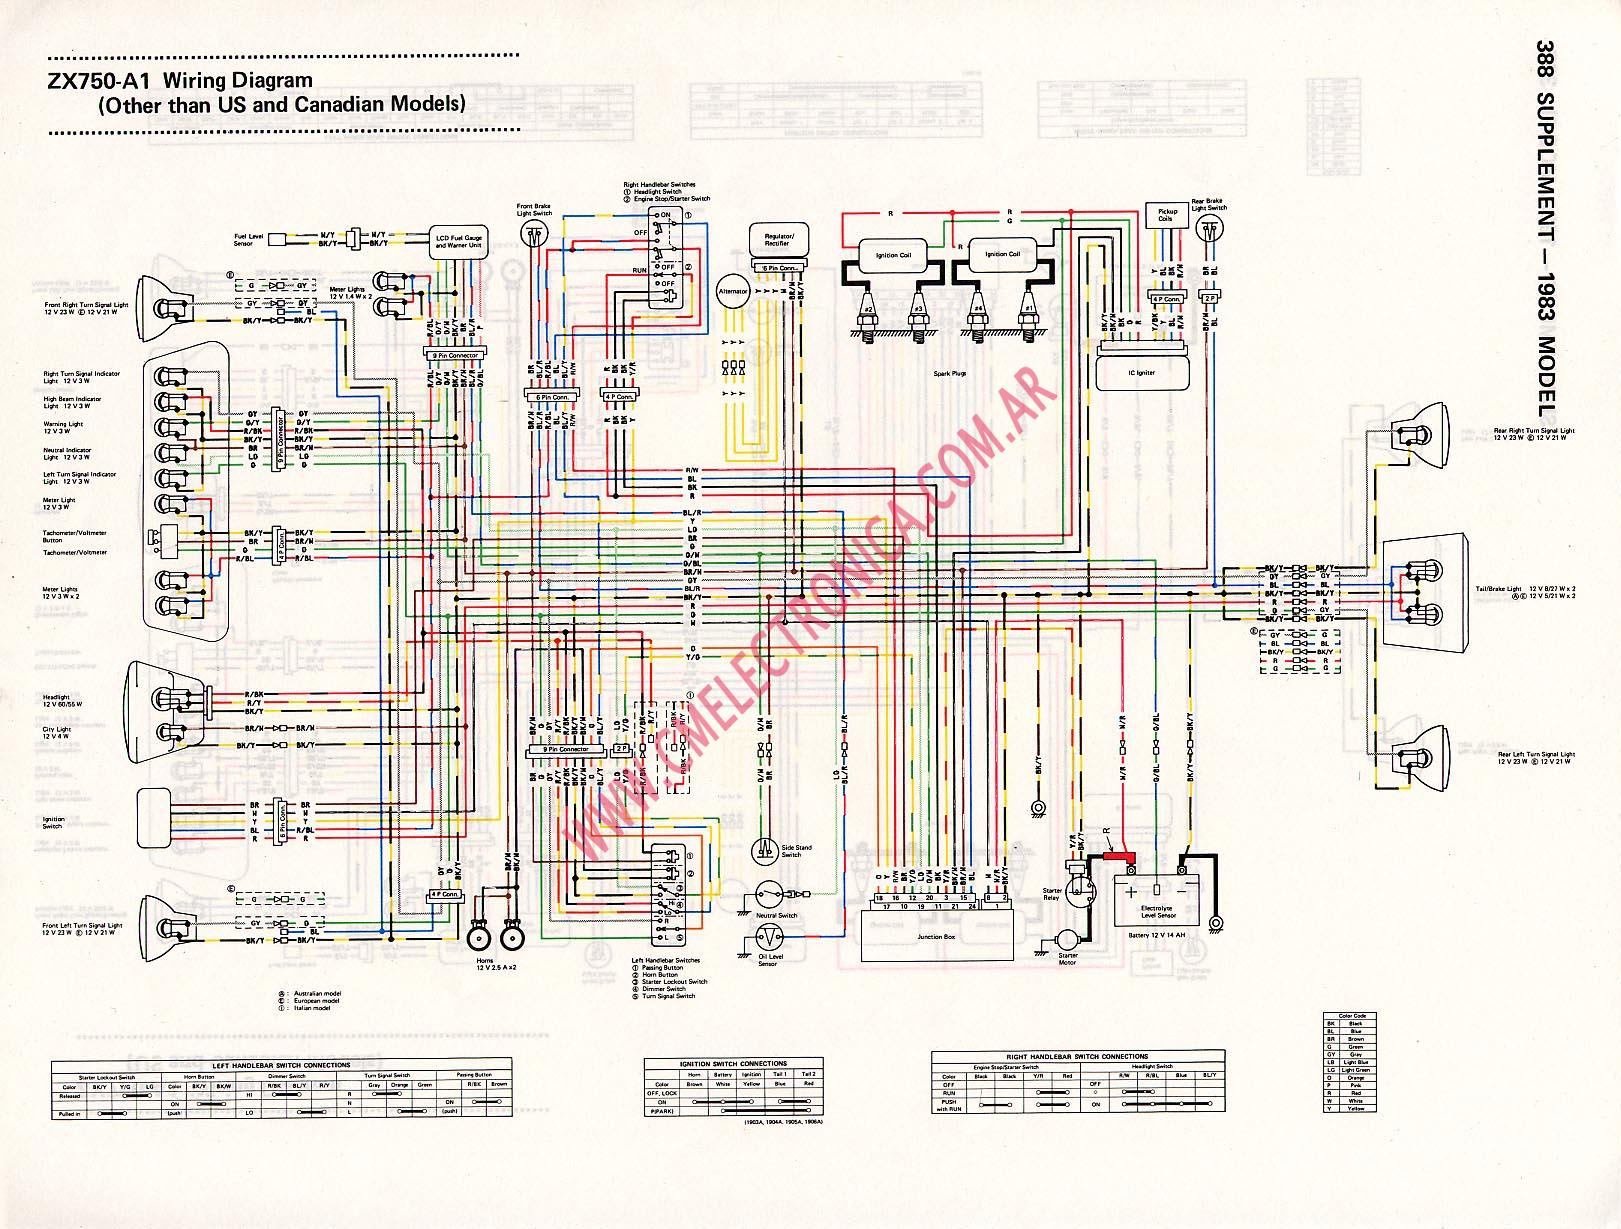 Honda Tl 125 Wiring Diagram Auto Electrical 2005 Acura Stereo Diagrams 83 Shadow 750 Turn Signal Relay